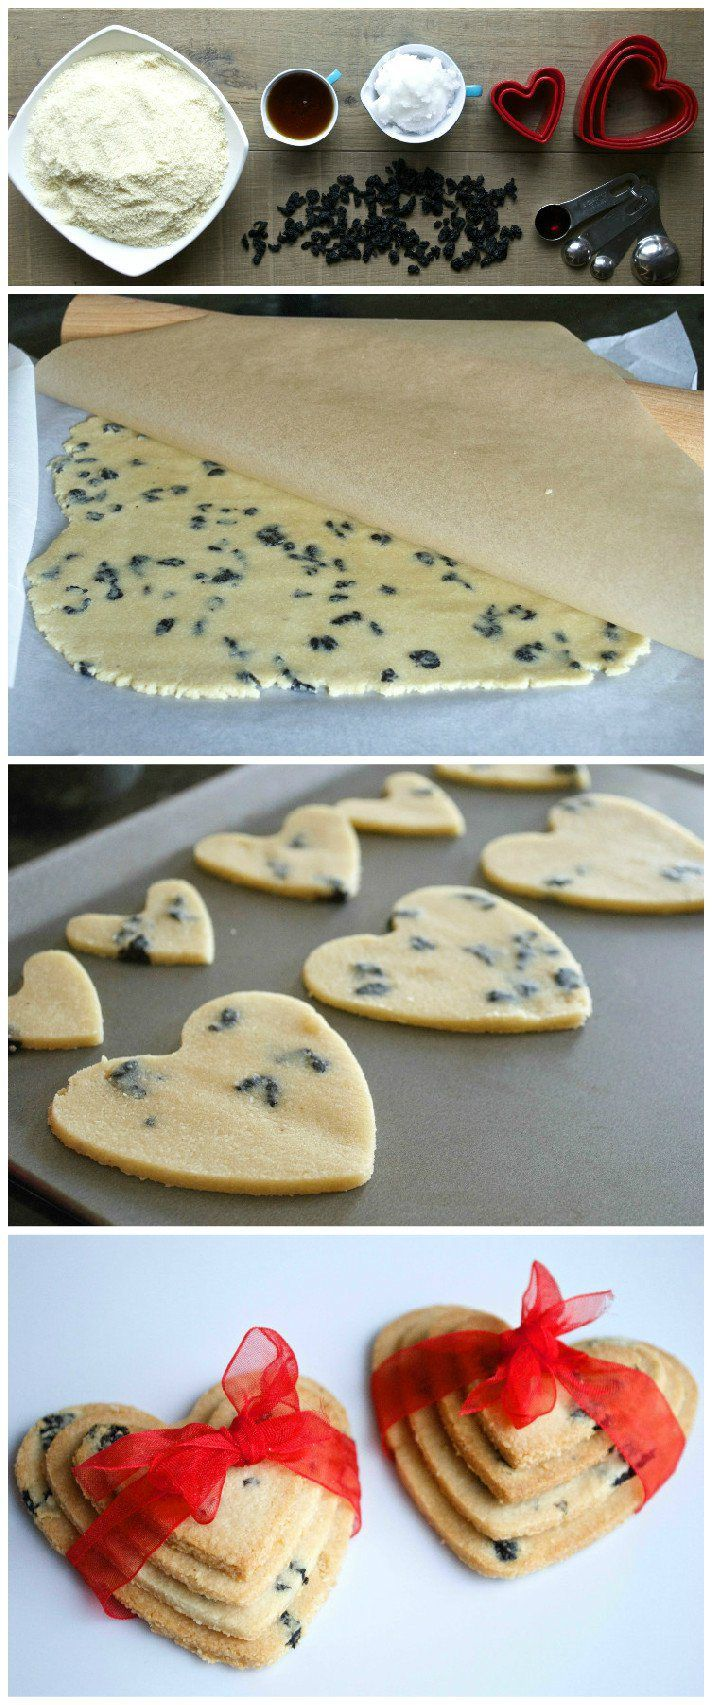 Organic love heart biscuits to make with kids, suitable for toddlers from 10 months+